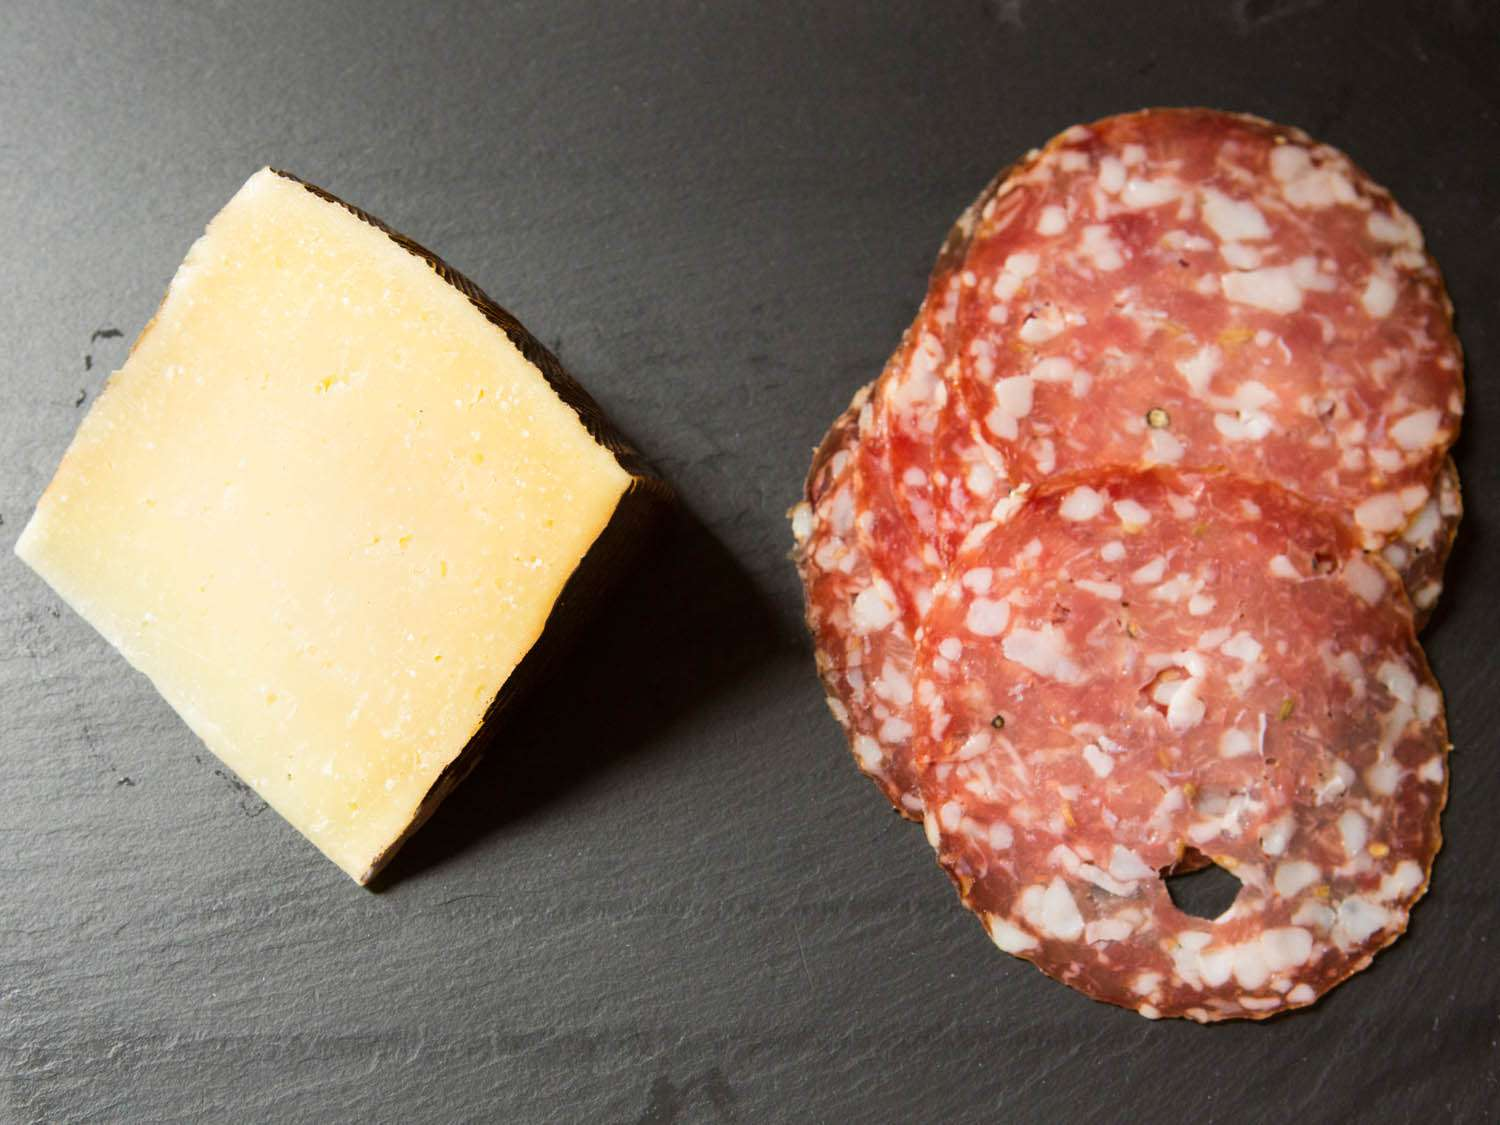 20140929-meat-cheese-vicky-wasik-2.jpg